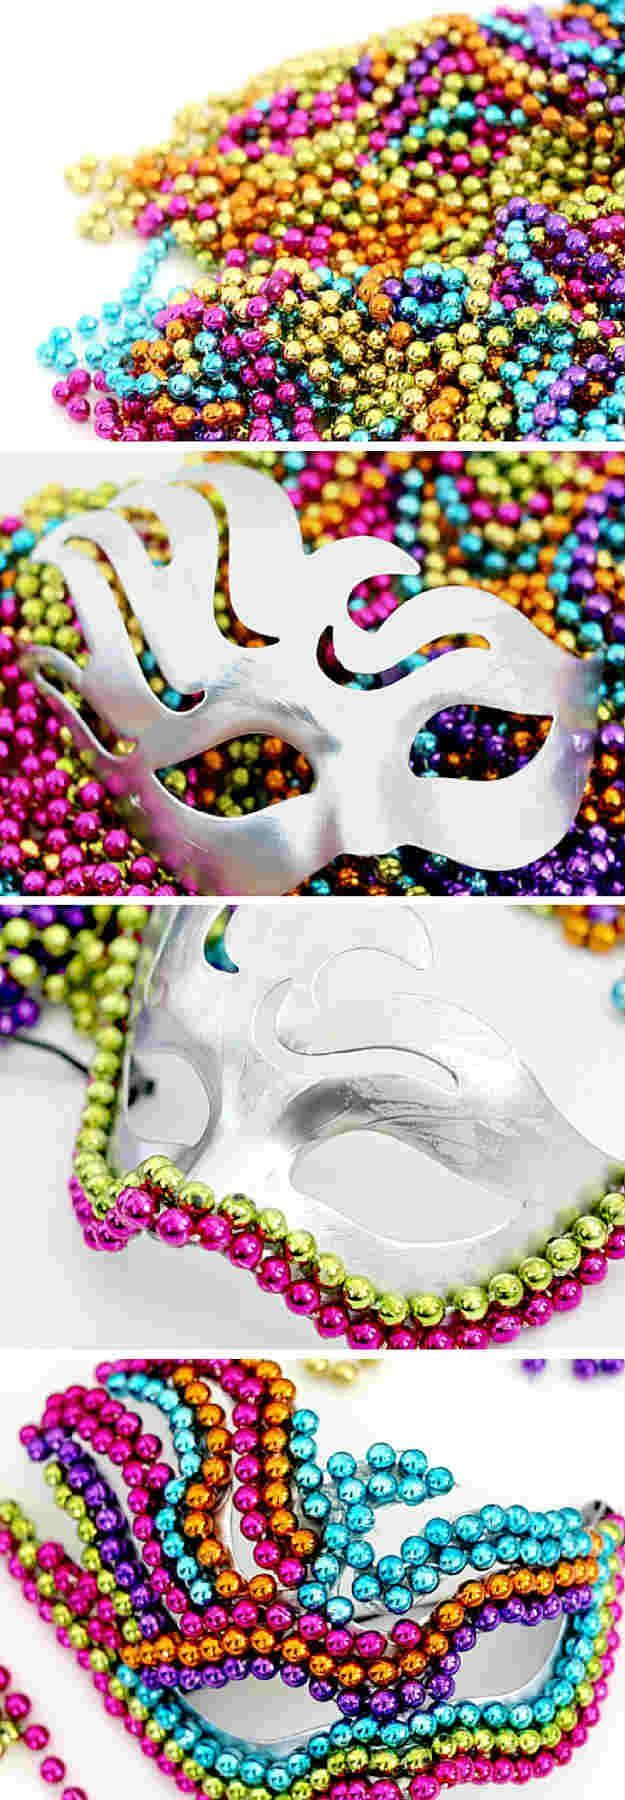 background gras market white creative vetre mardi antanaviciute holiday and carnival mask on view beads top photos